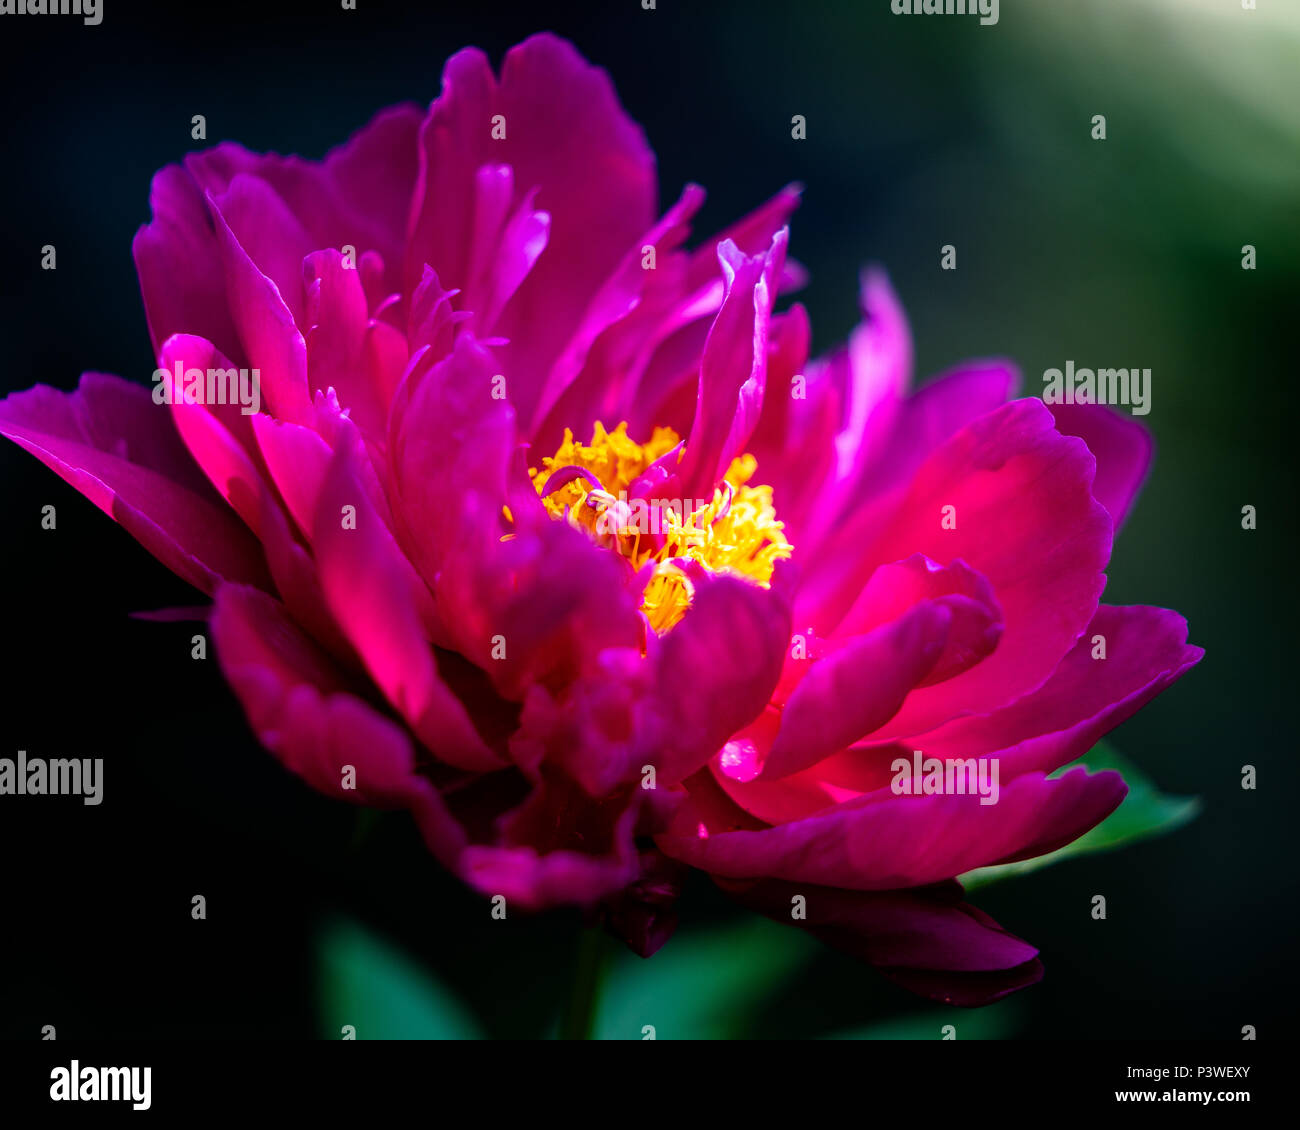 Beautiful pink flower with sunlight falling over it - Stock Image